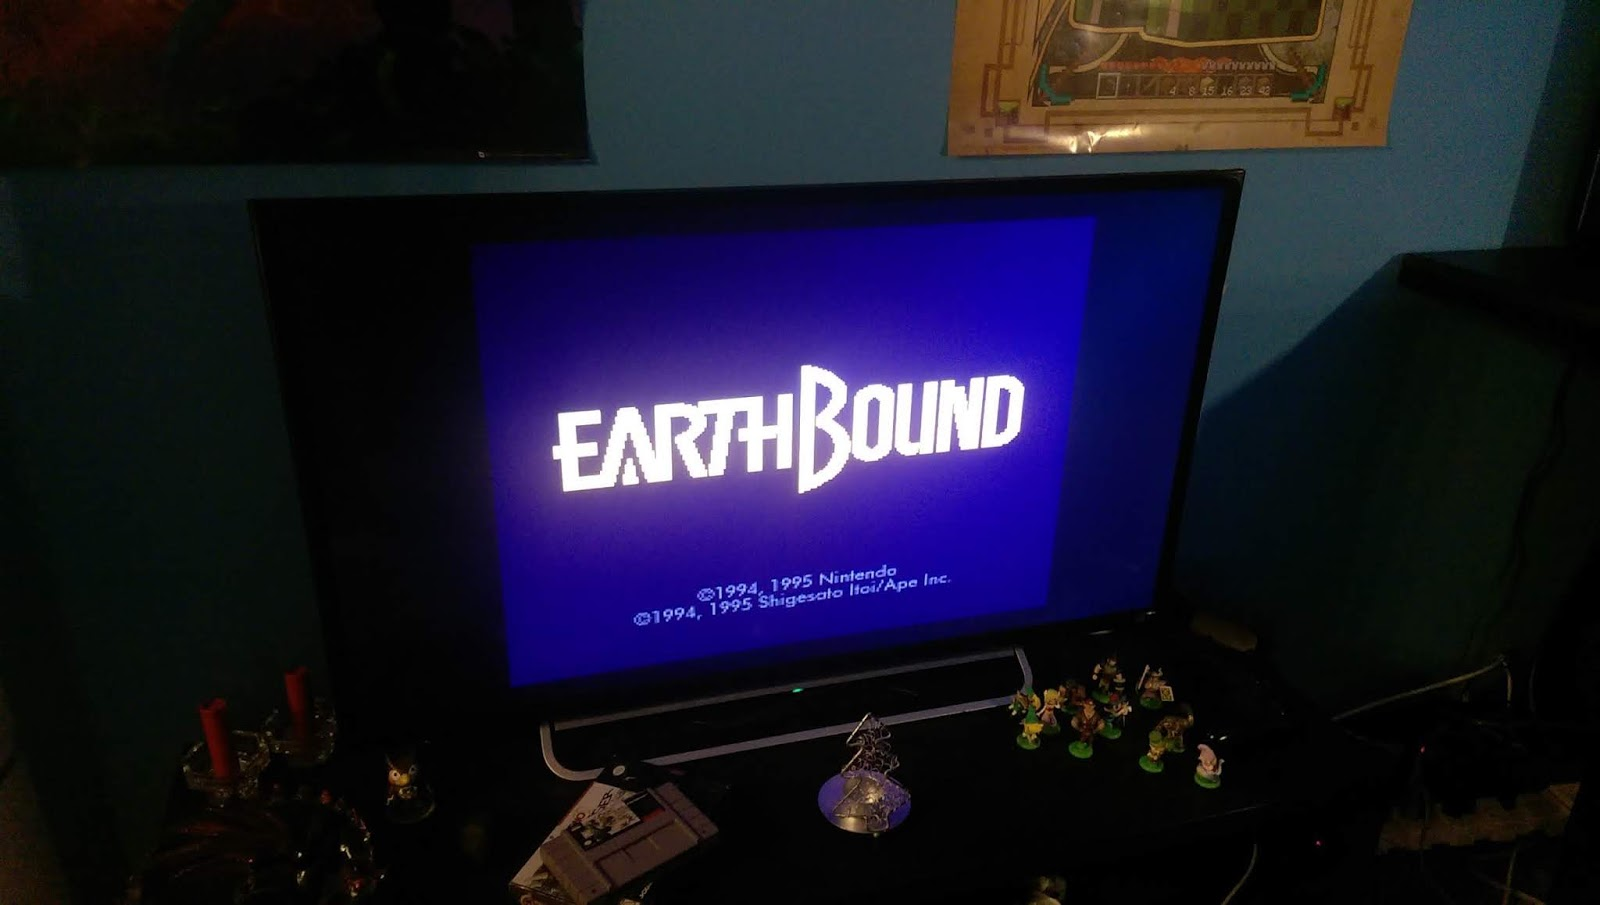 Getting Excited, Making Things: Blog: Thoughts on Earthbound